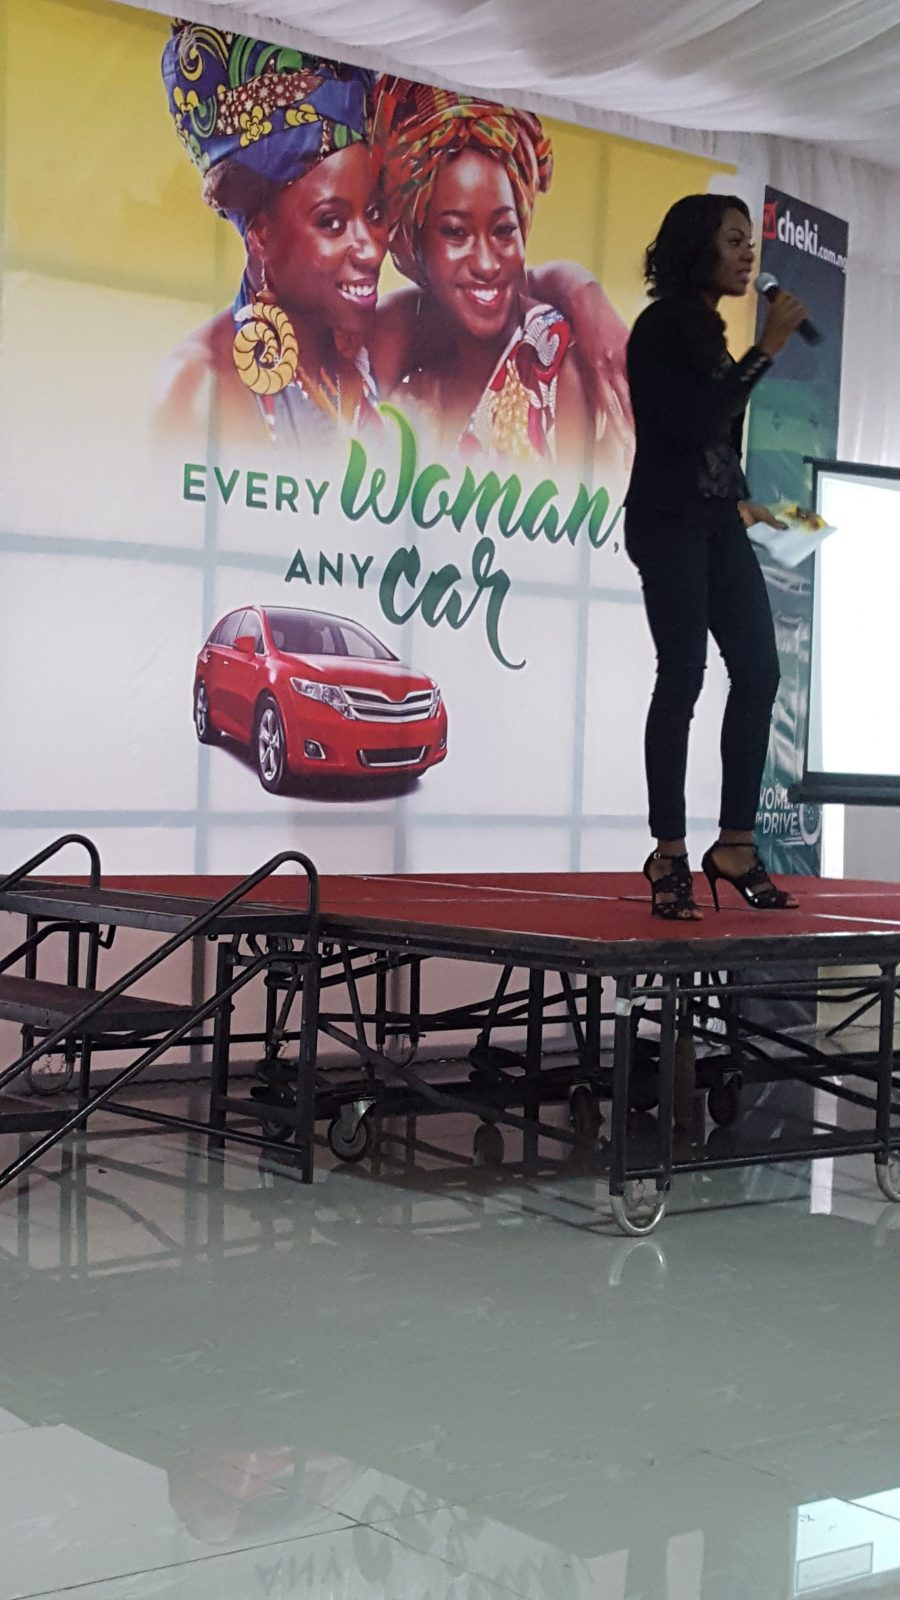 Every Woman Any Car -Nigeria